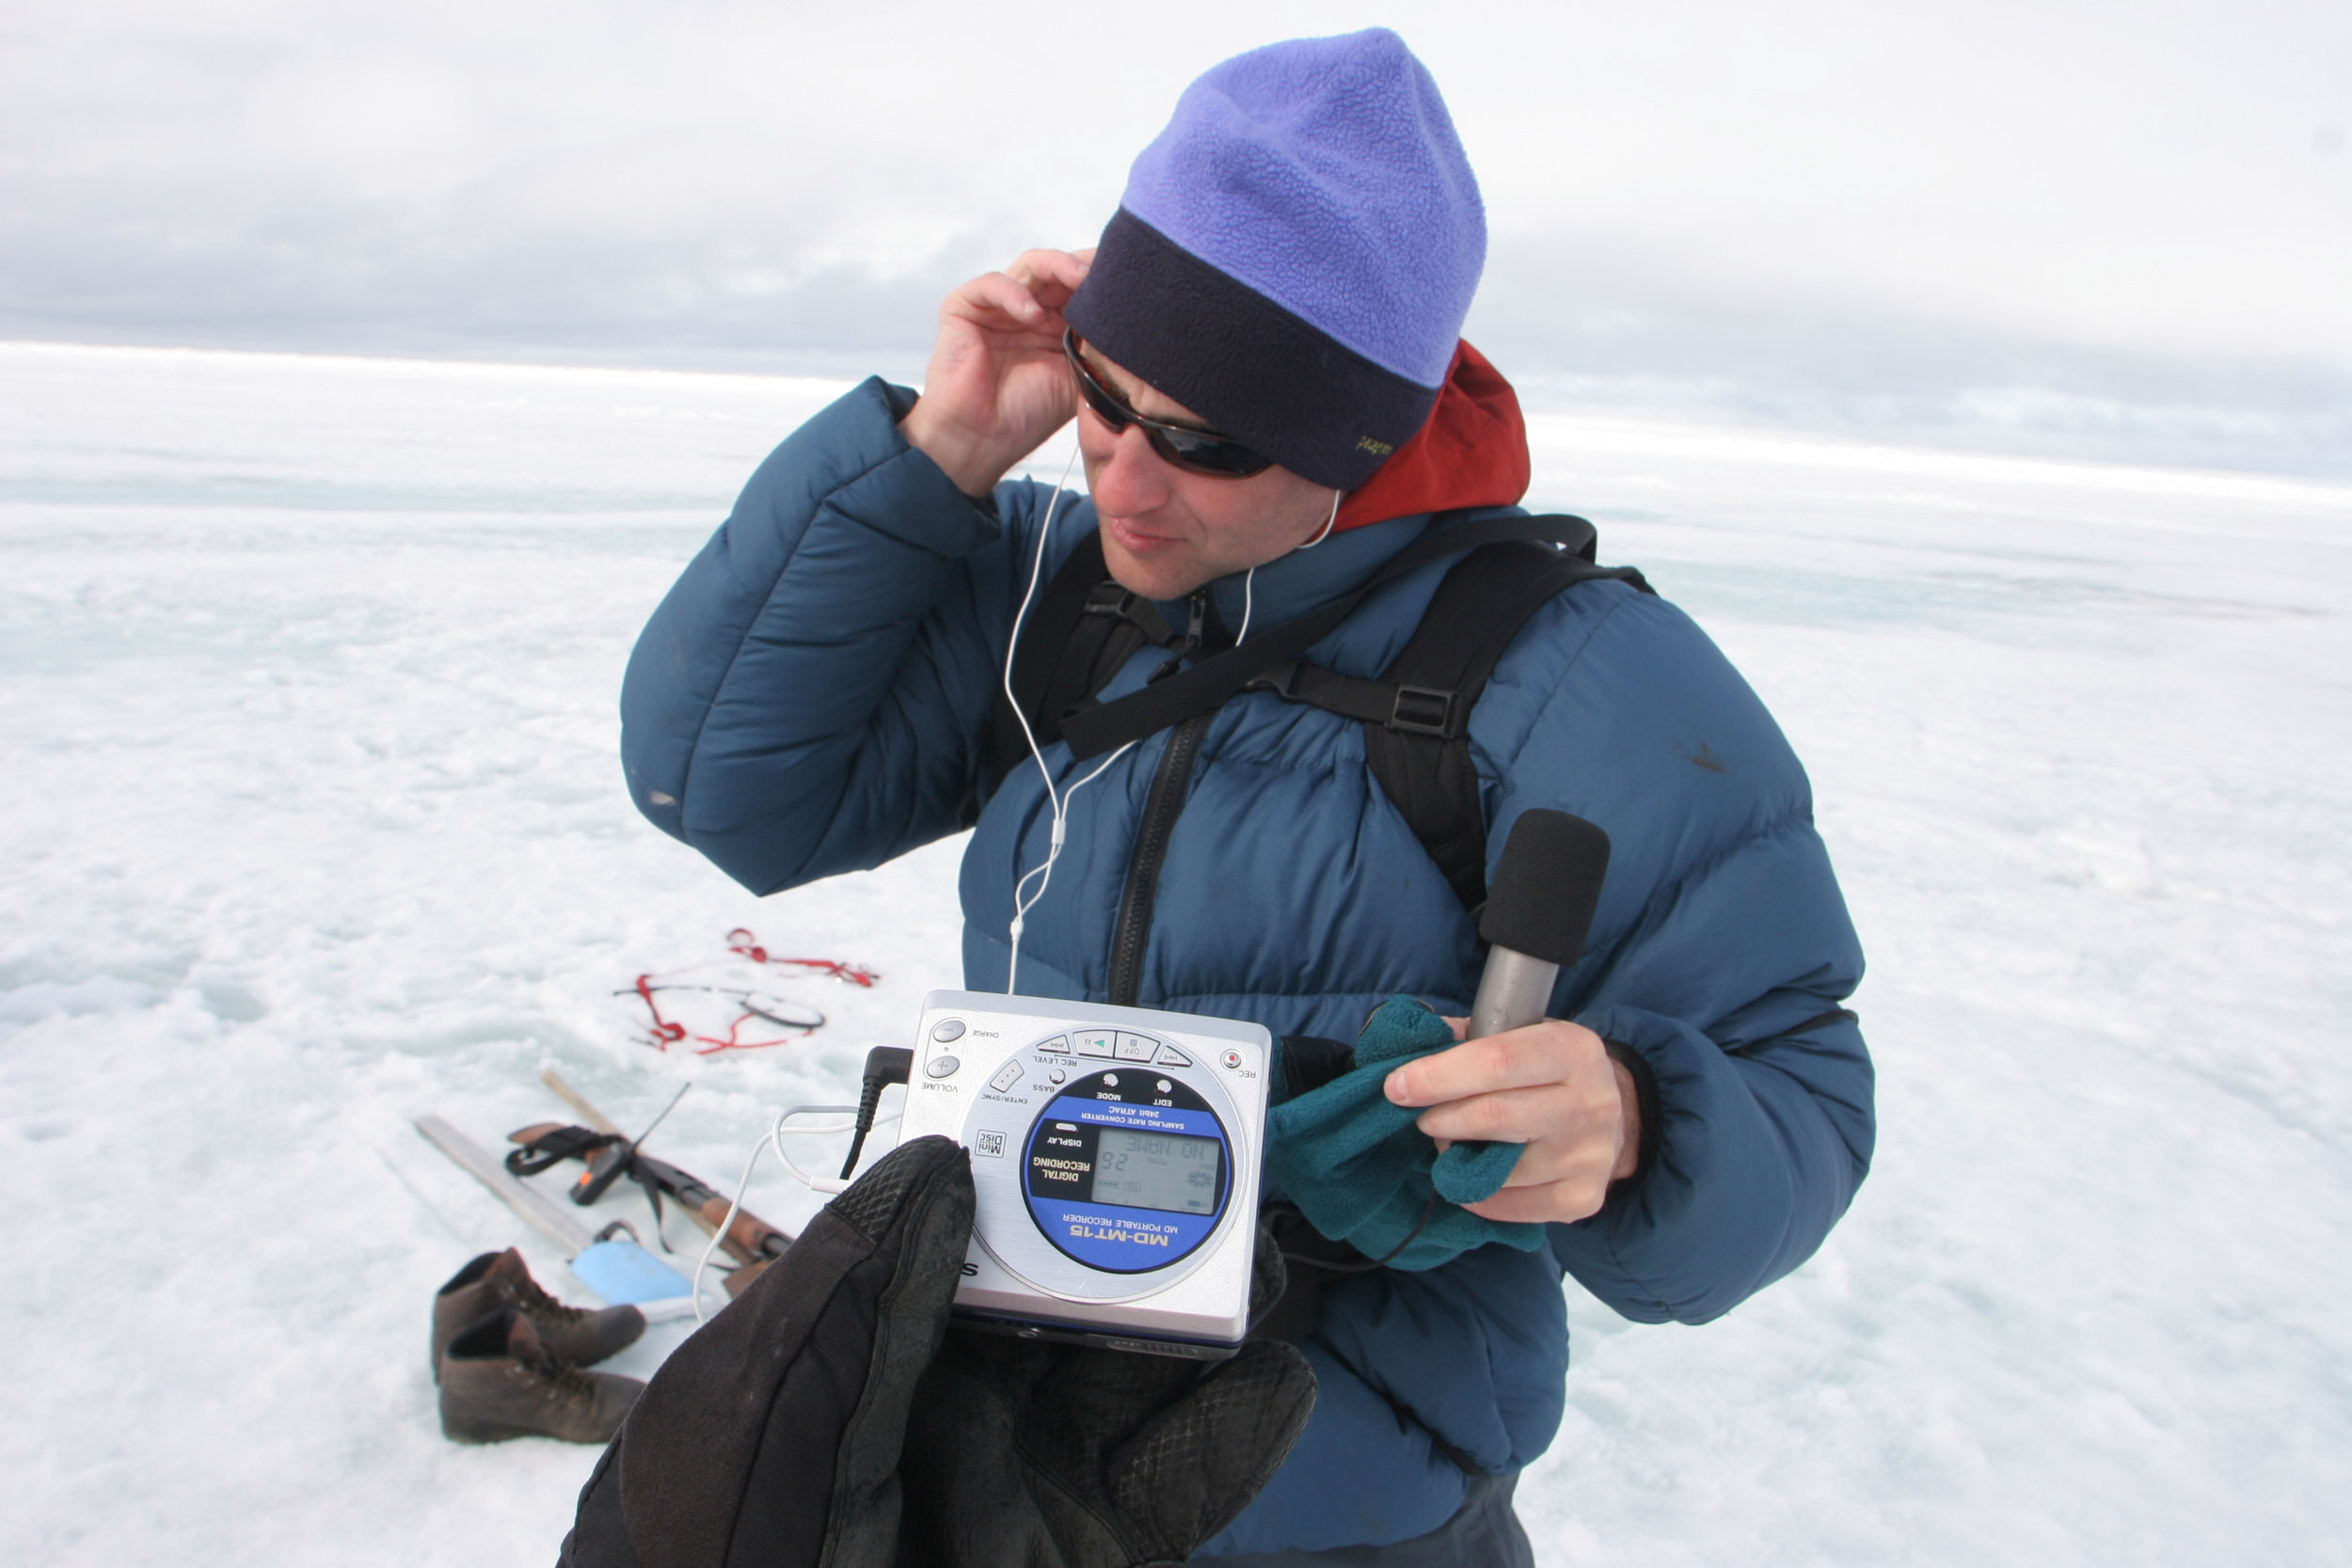 Journalist Craig Welch prepares to interview scientists at the edge of the frozen Arctic Ocean outside Barrow, Alaska. PHOTO CREDIT: Steve Ringman